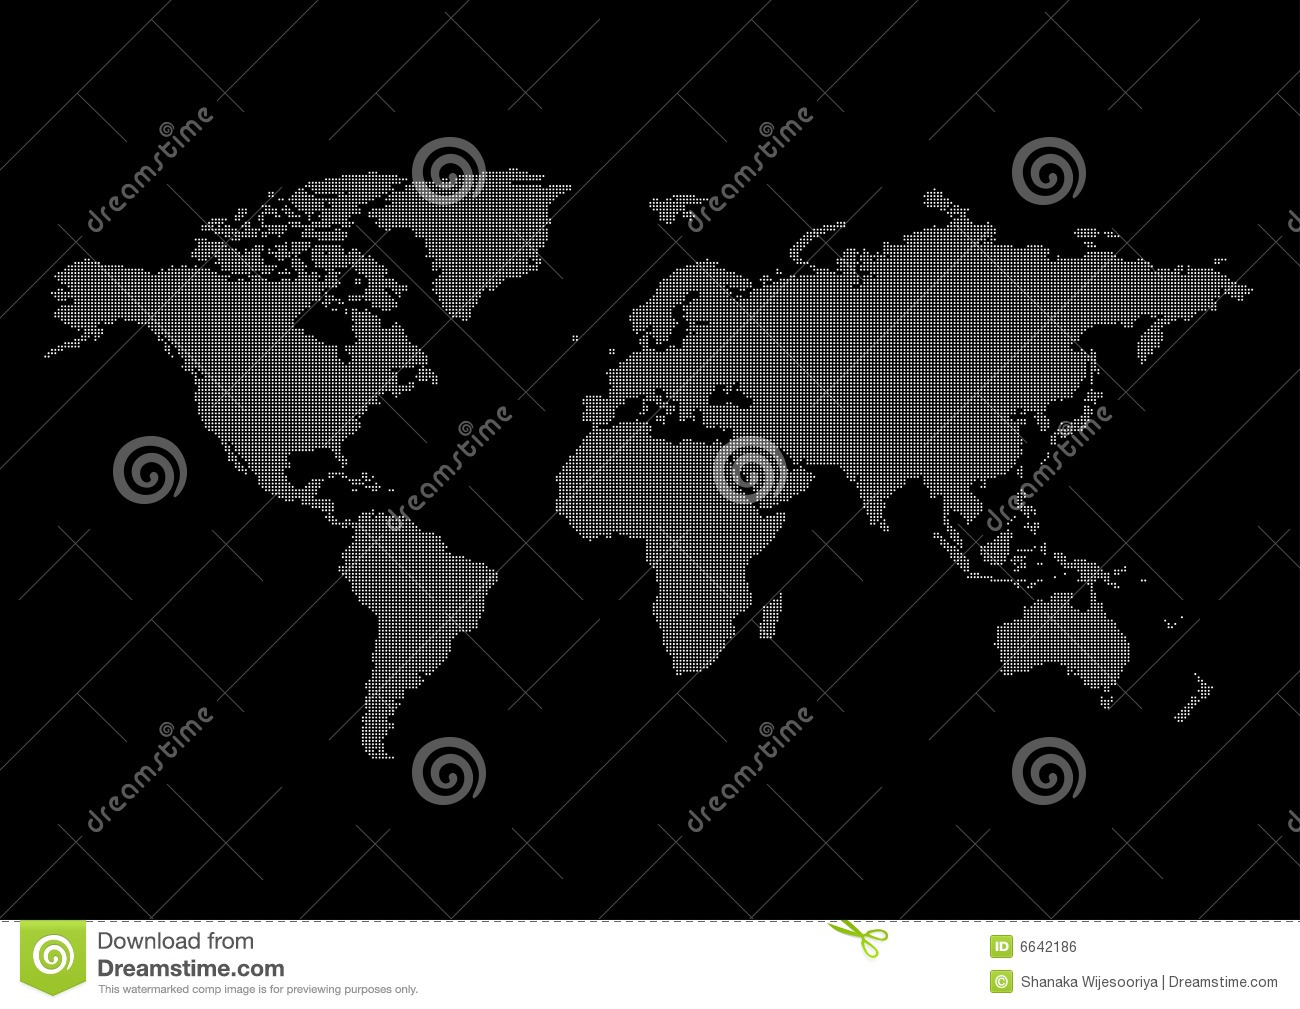 World map black background stock vector image of globes 6642186 world map black background gumiabroncs Images